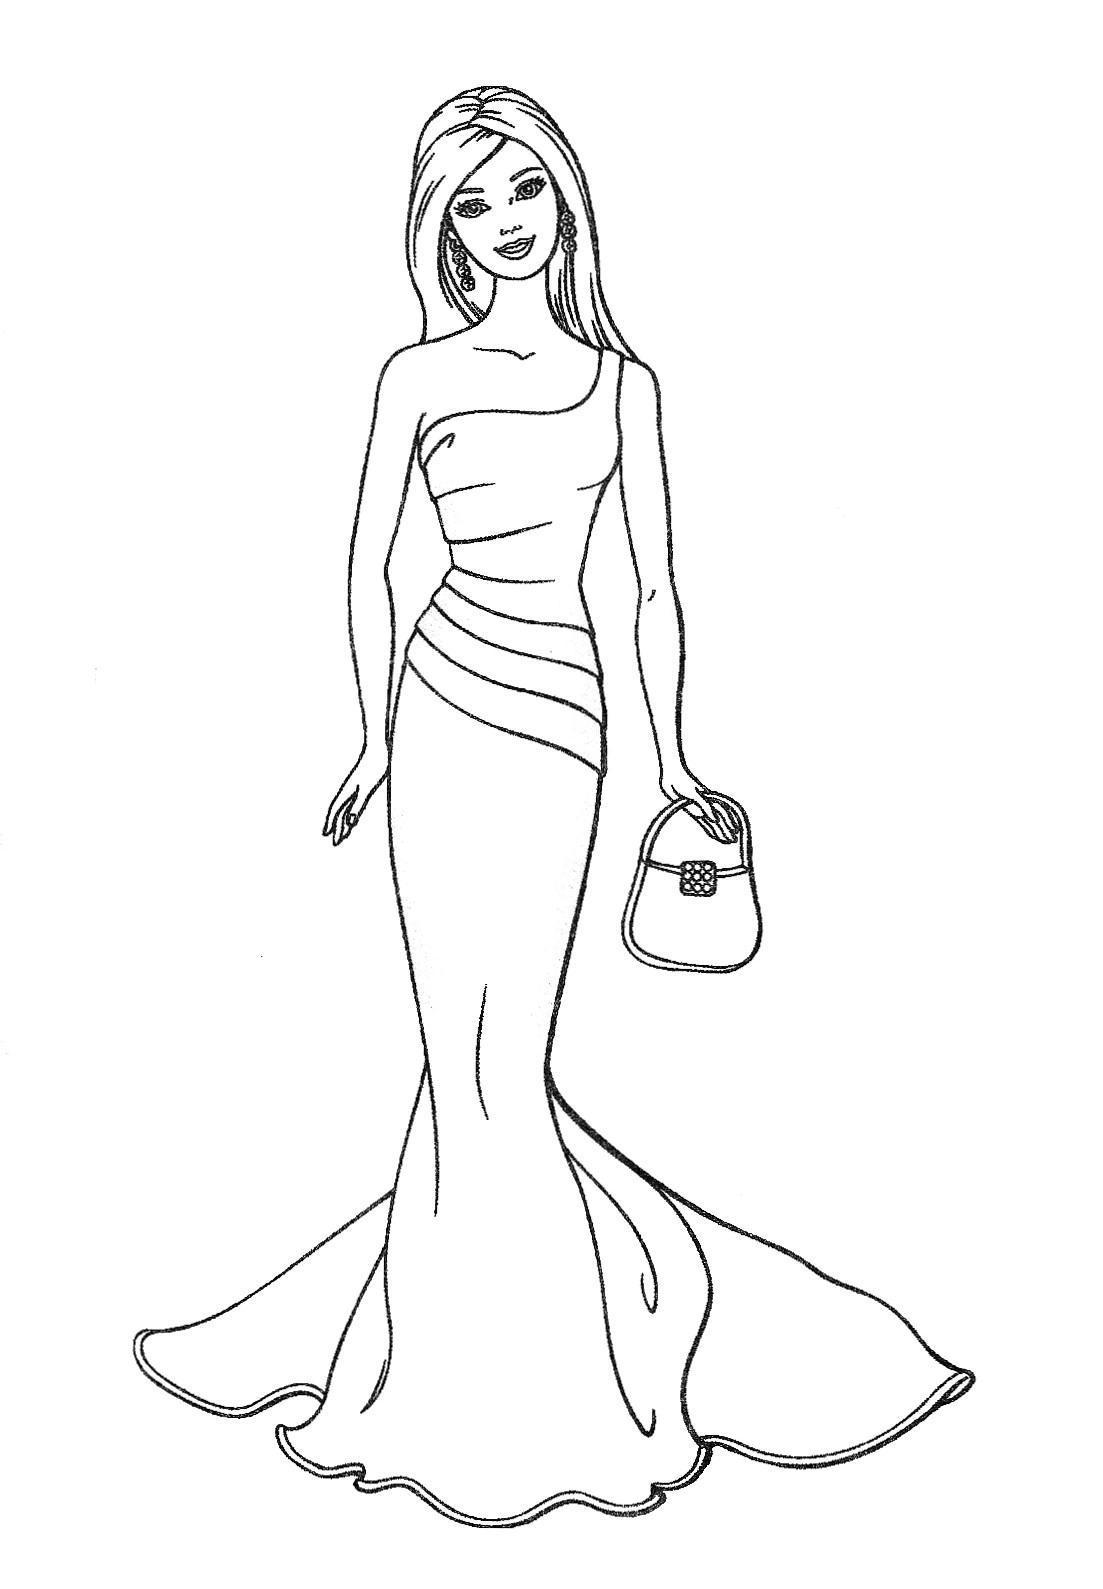 Coloring sheet barbie - Barbie Coloring Pages Free